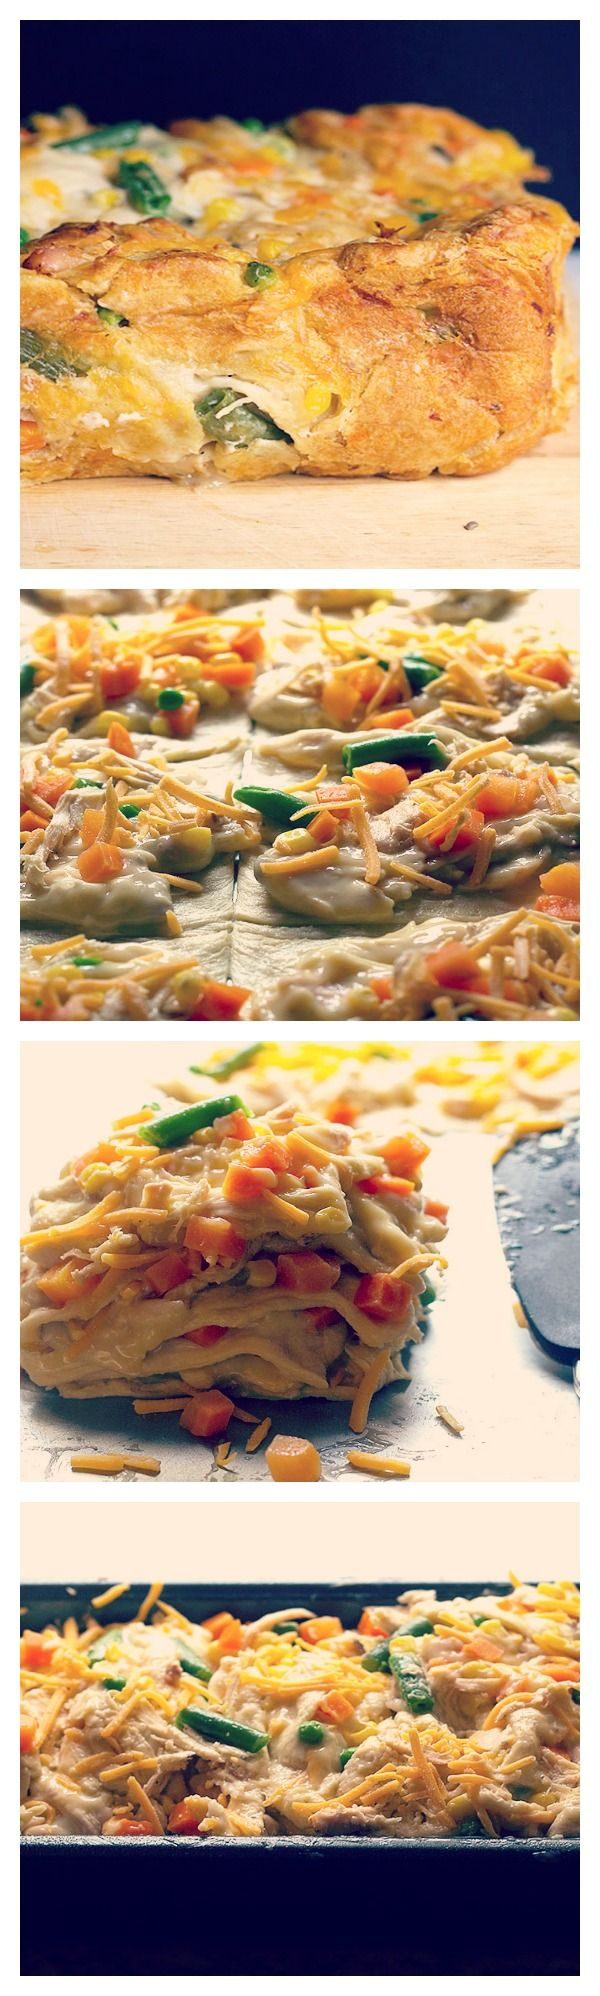 Ultimate Comfort Food: Chicken Pot Pie Crescent Bake!